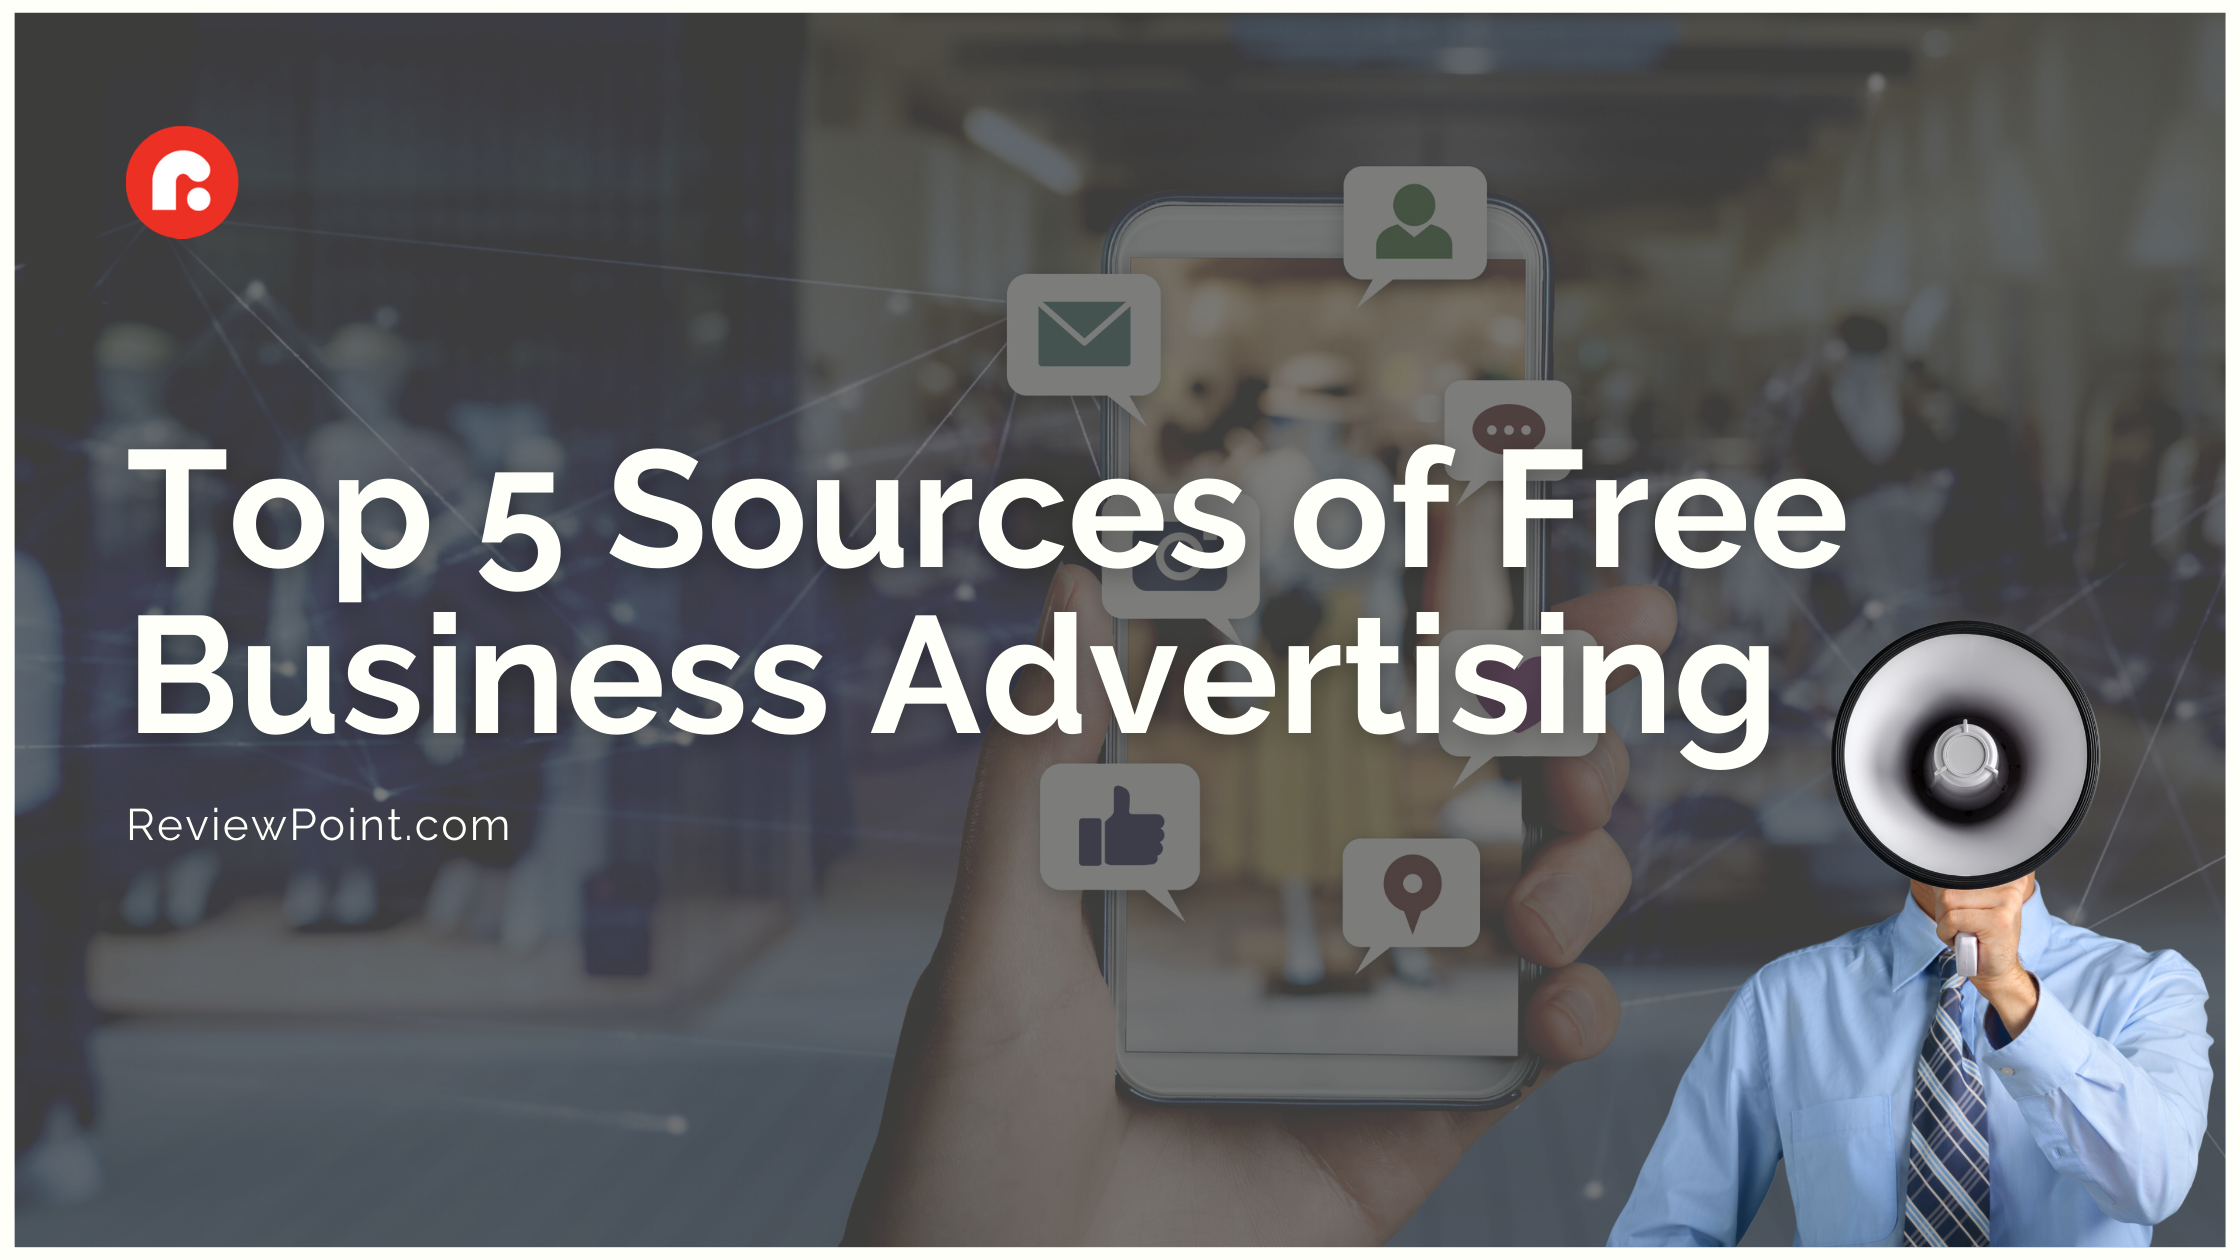 Top 5 Sources of Free Business Advertising